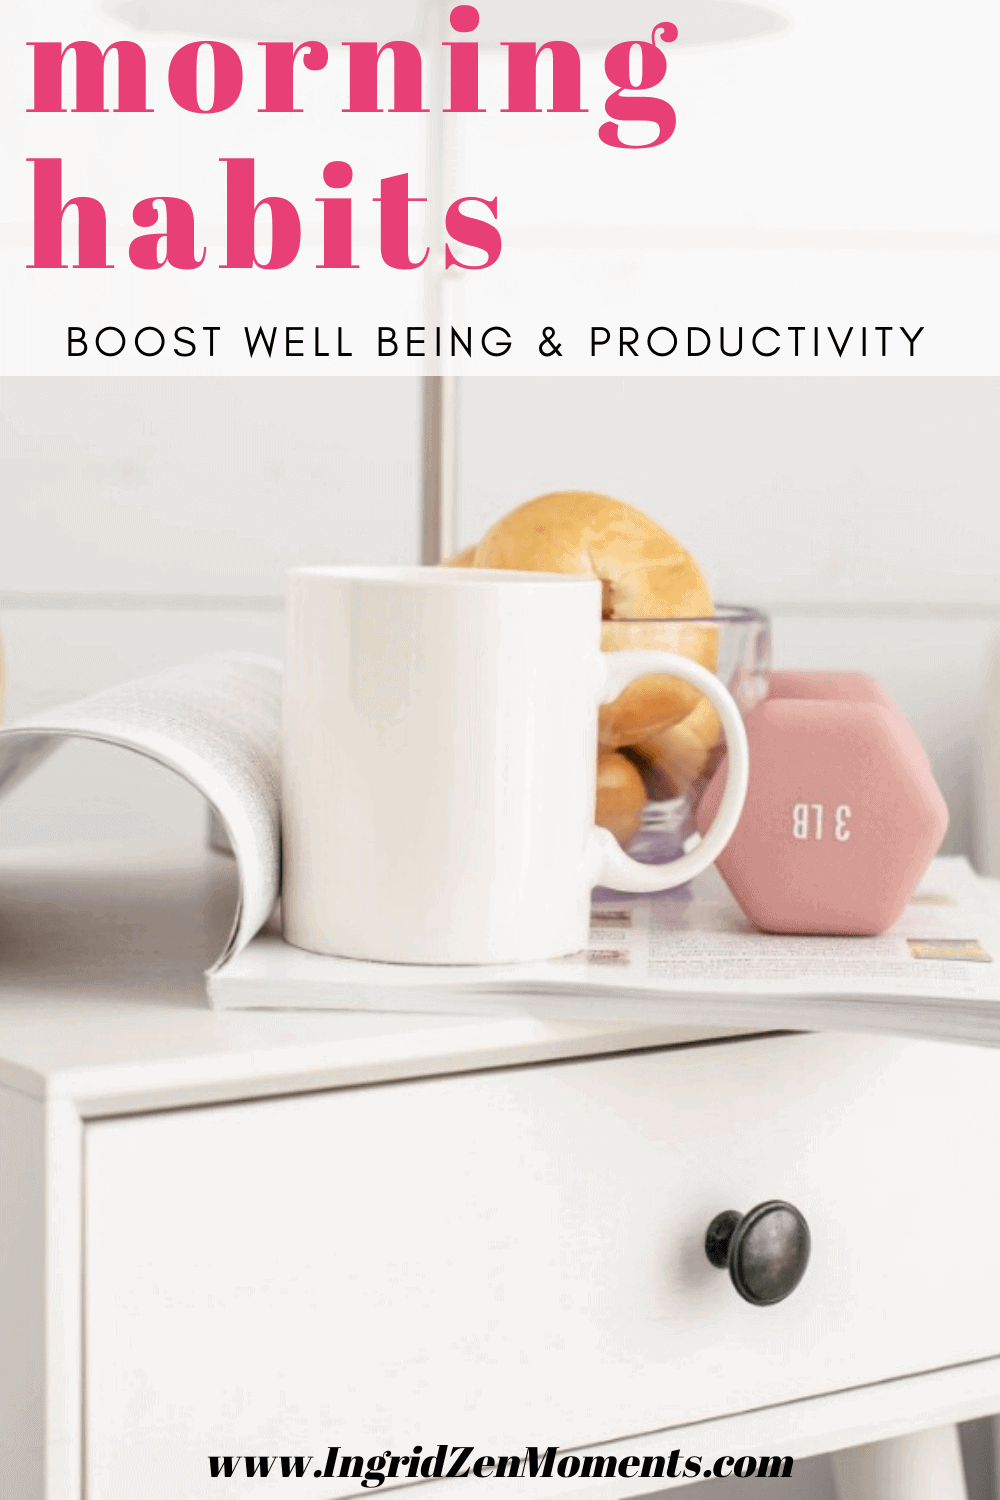 Morning habits for well being and productivity